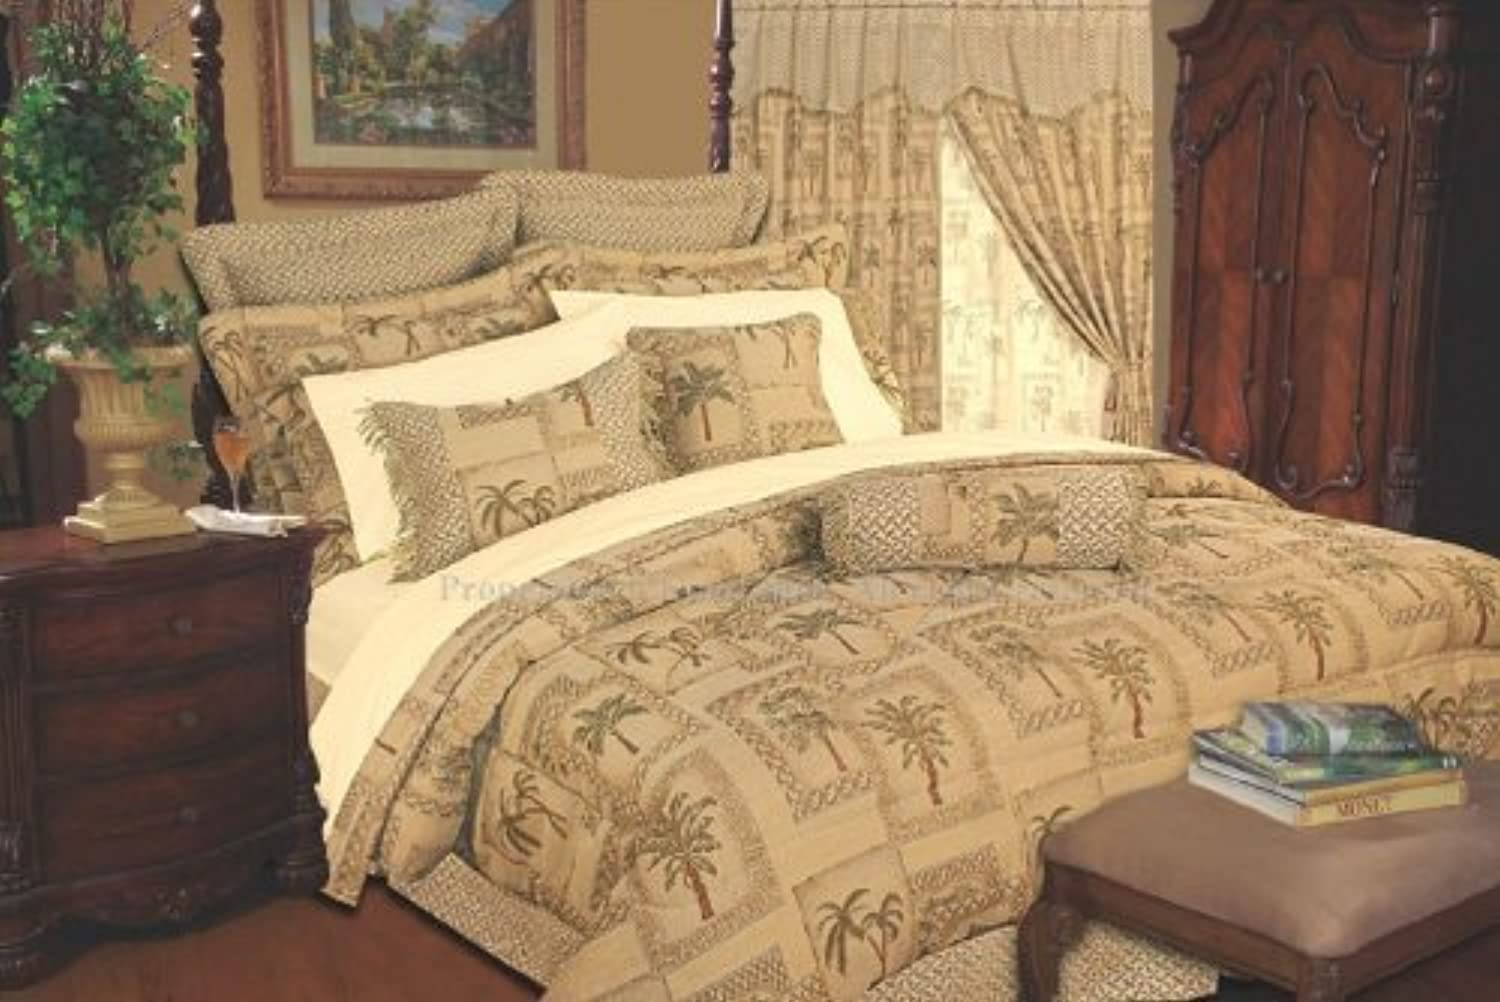 Legacy Decor Tapestry Palm Tree Bedding Comforter Set, Full, 9 Piece